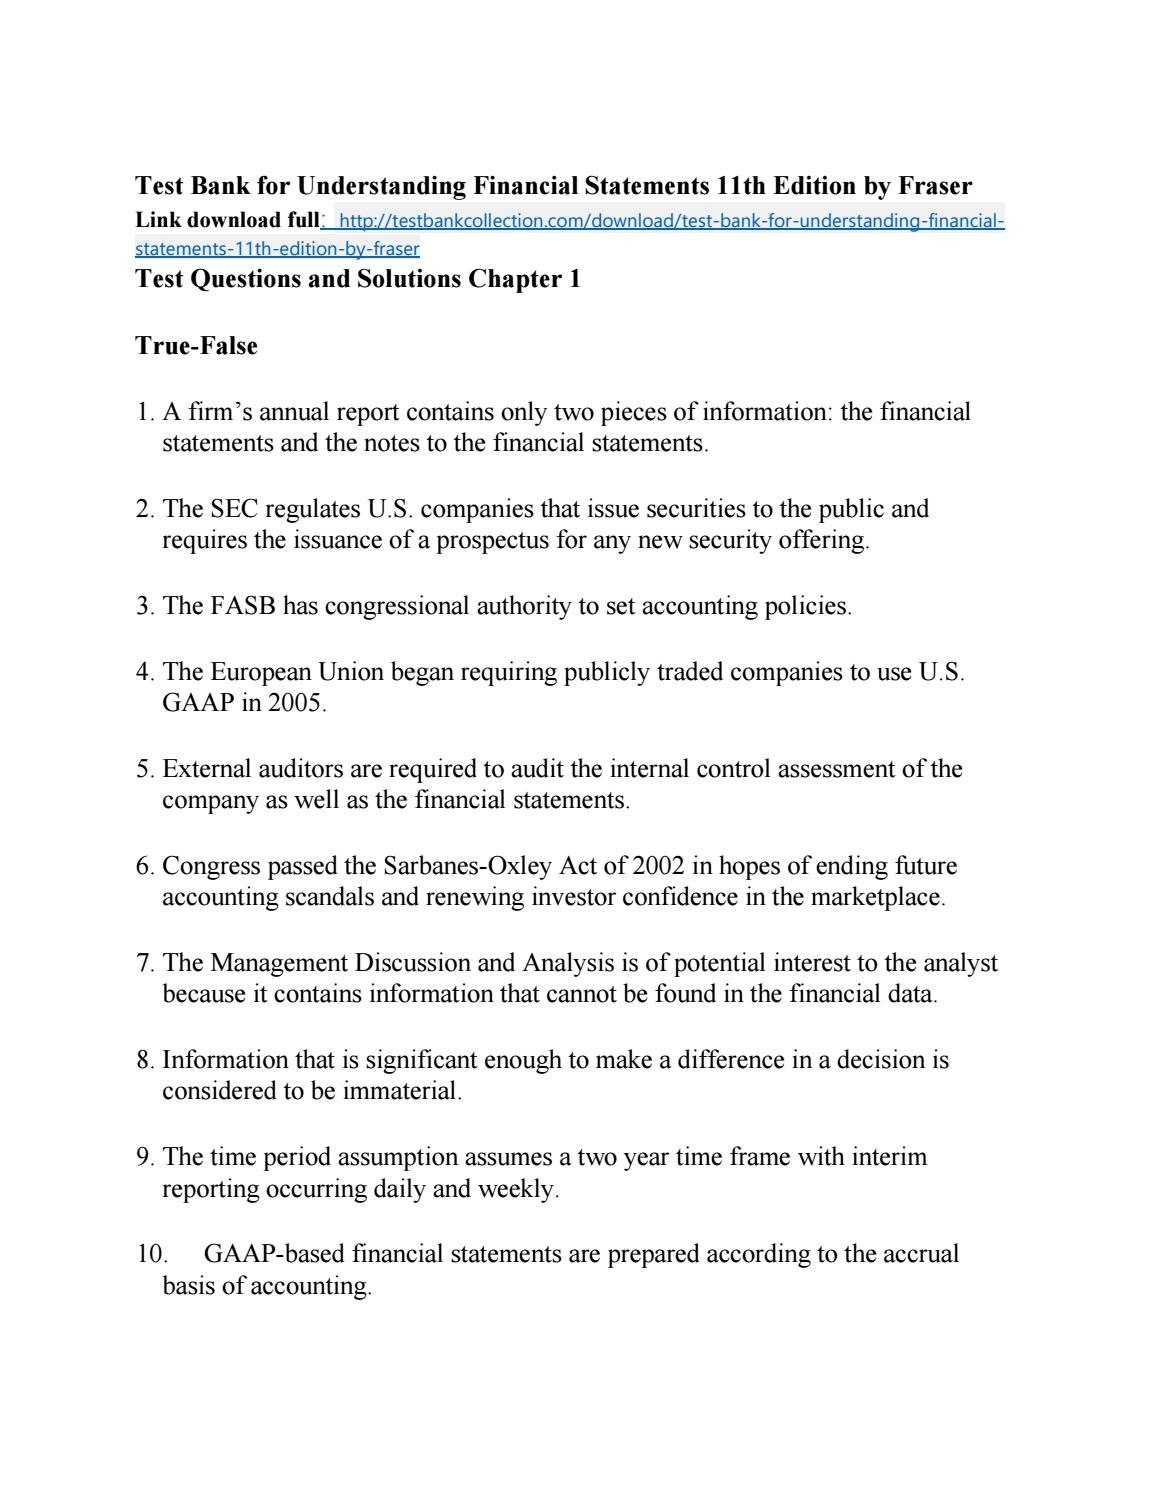 Test Bank For Understanding Financial Statements Th Edition Within Forensic Accounting Report Template